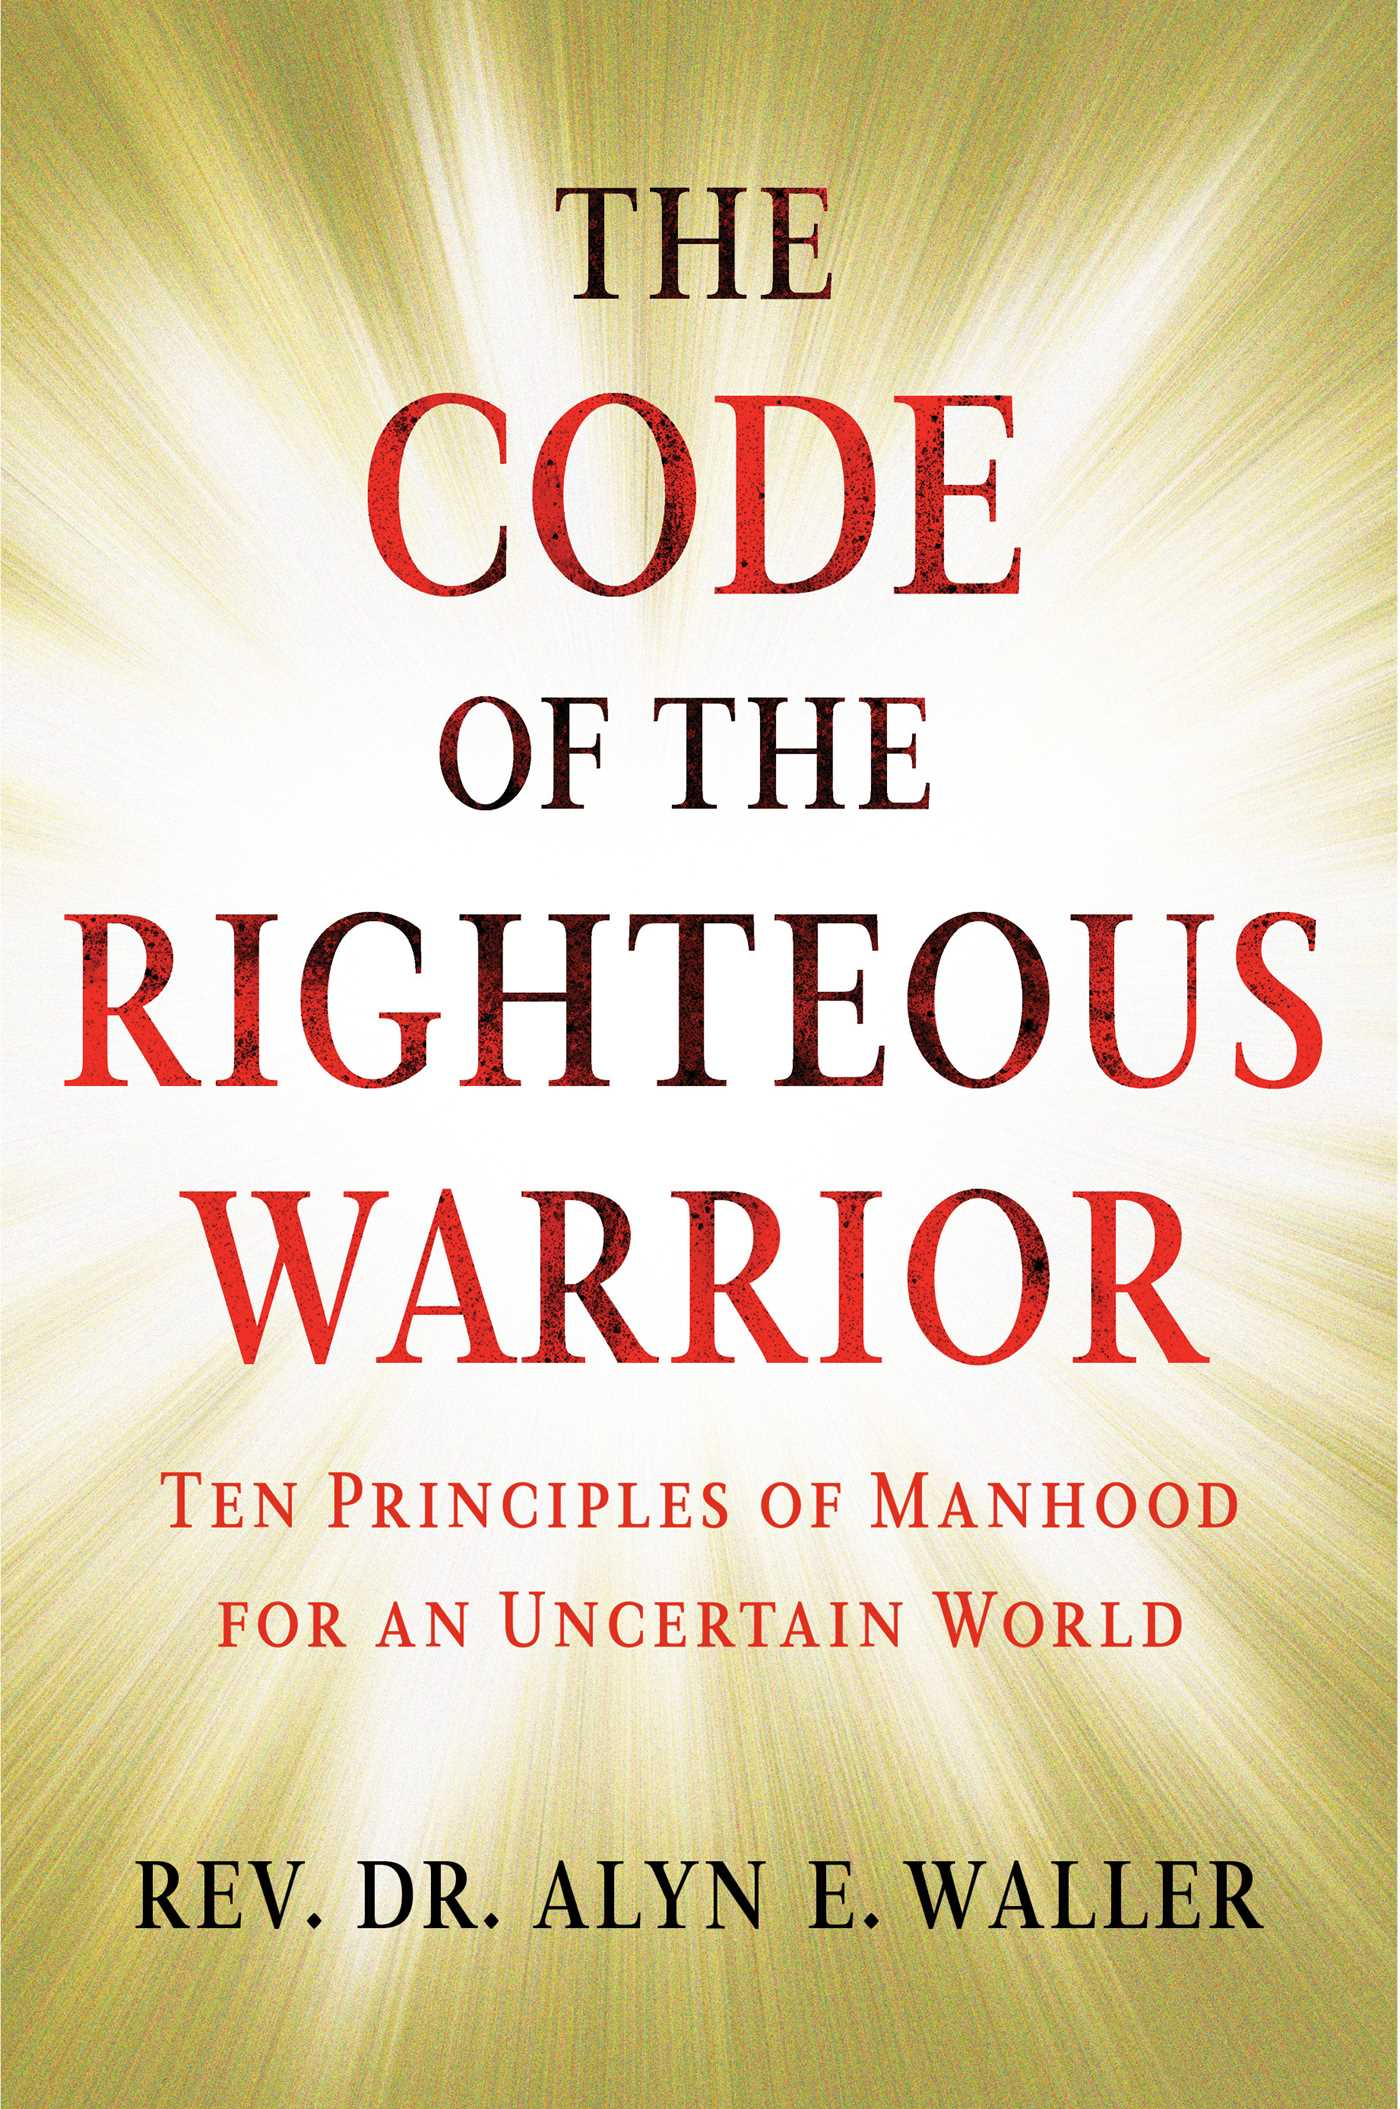 Code of the righteous warrior 9781501177200 hr